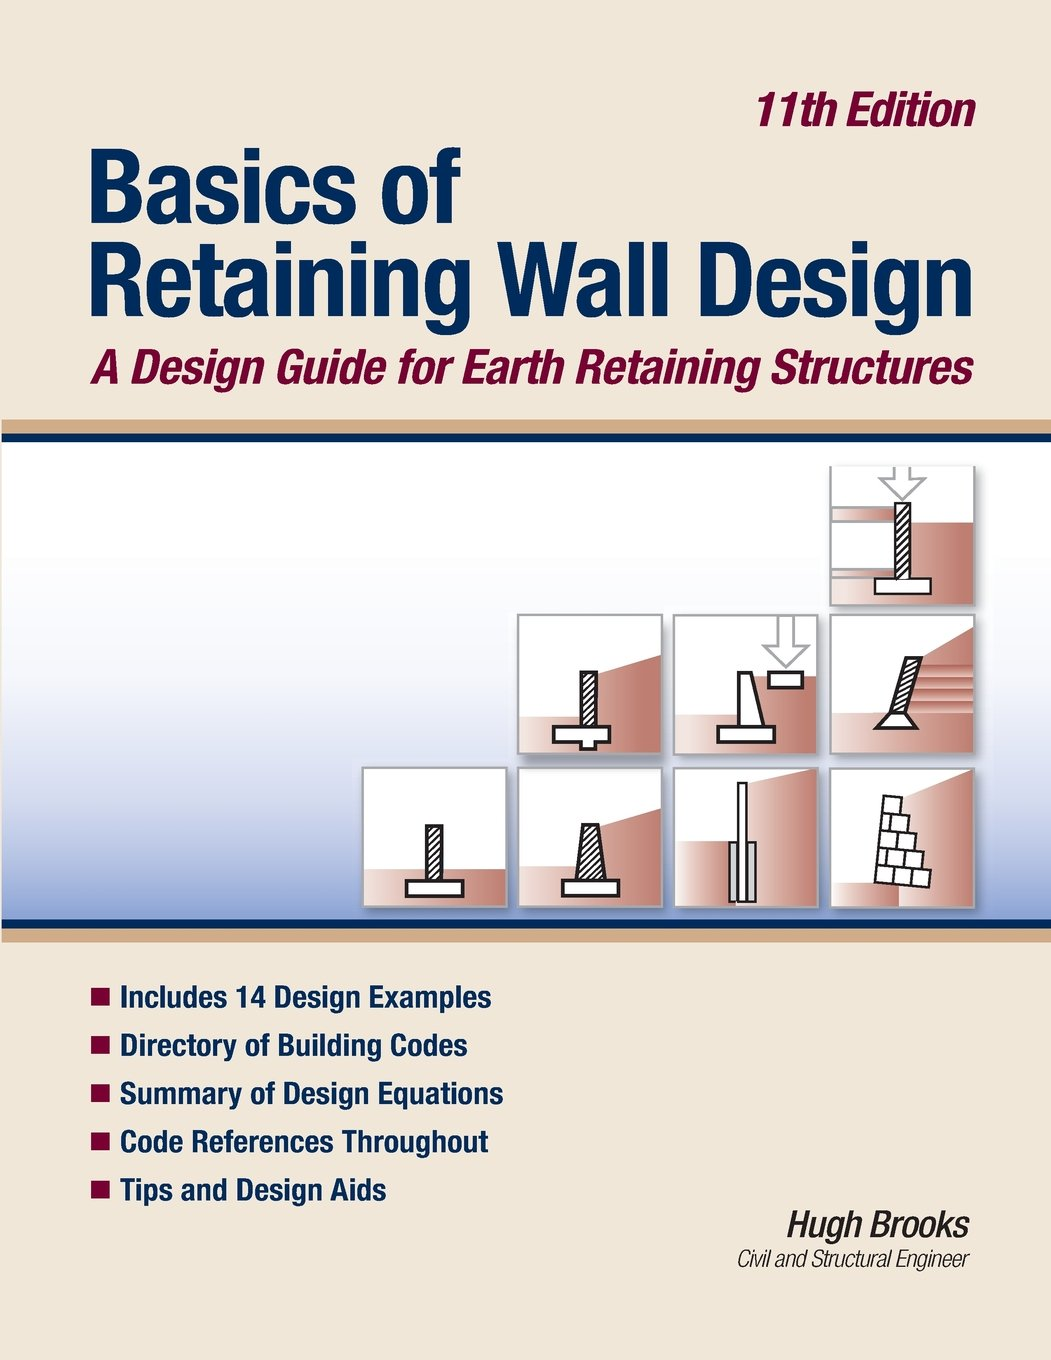 Basics of Retaining Wall Design 11th Edition: A design guide for earth  retaining structures: Hugh Brooks: 9780976836476: Amazon.com: Books